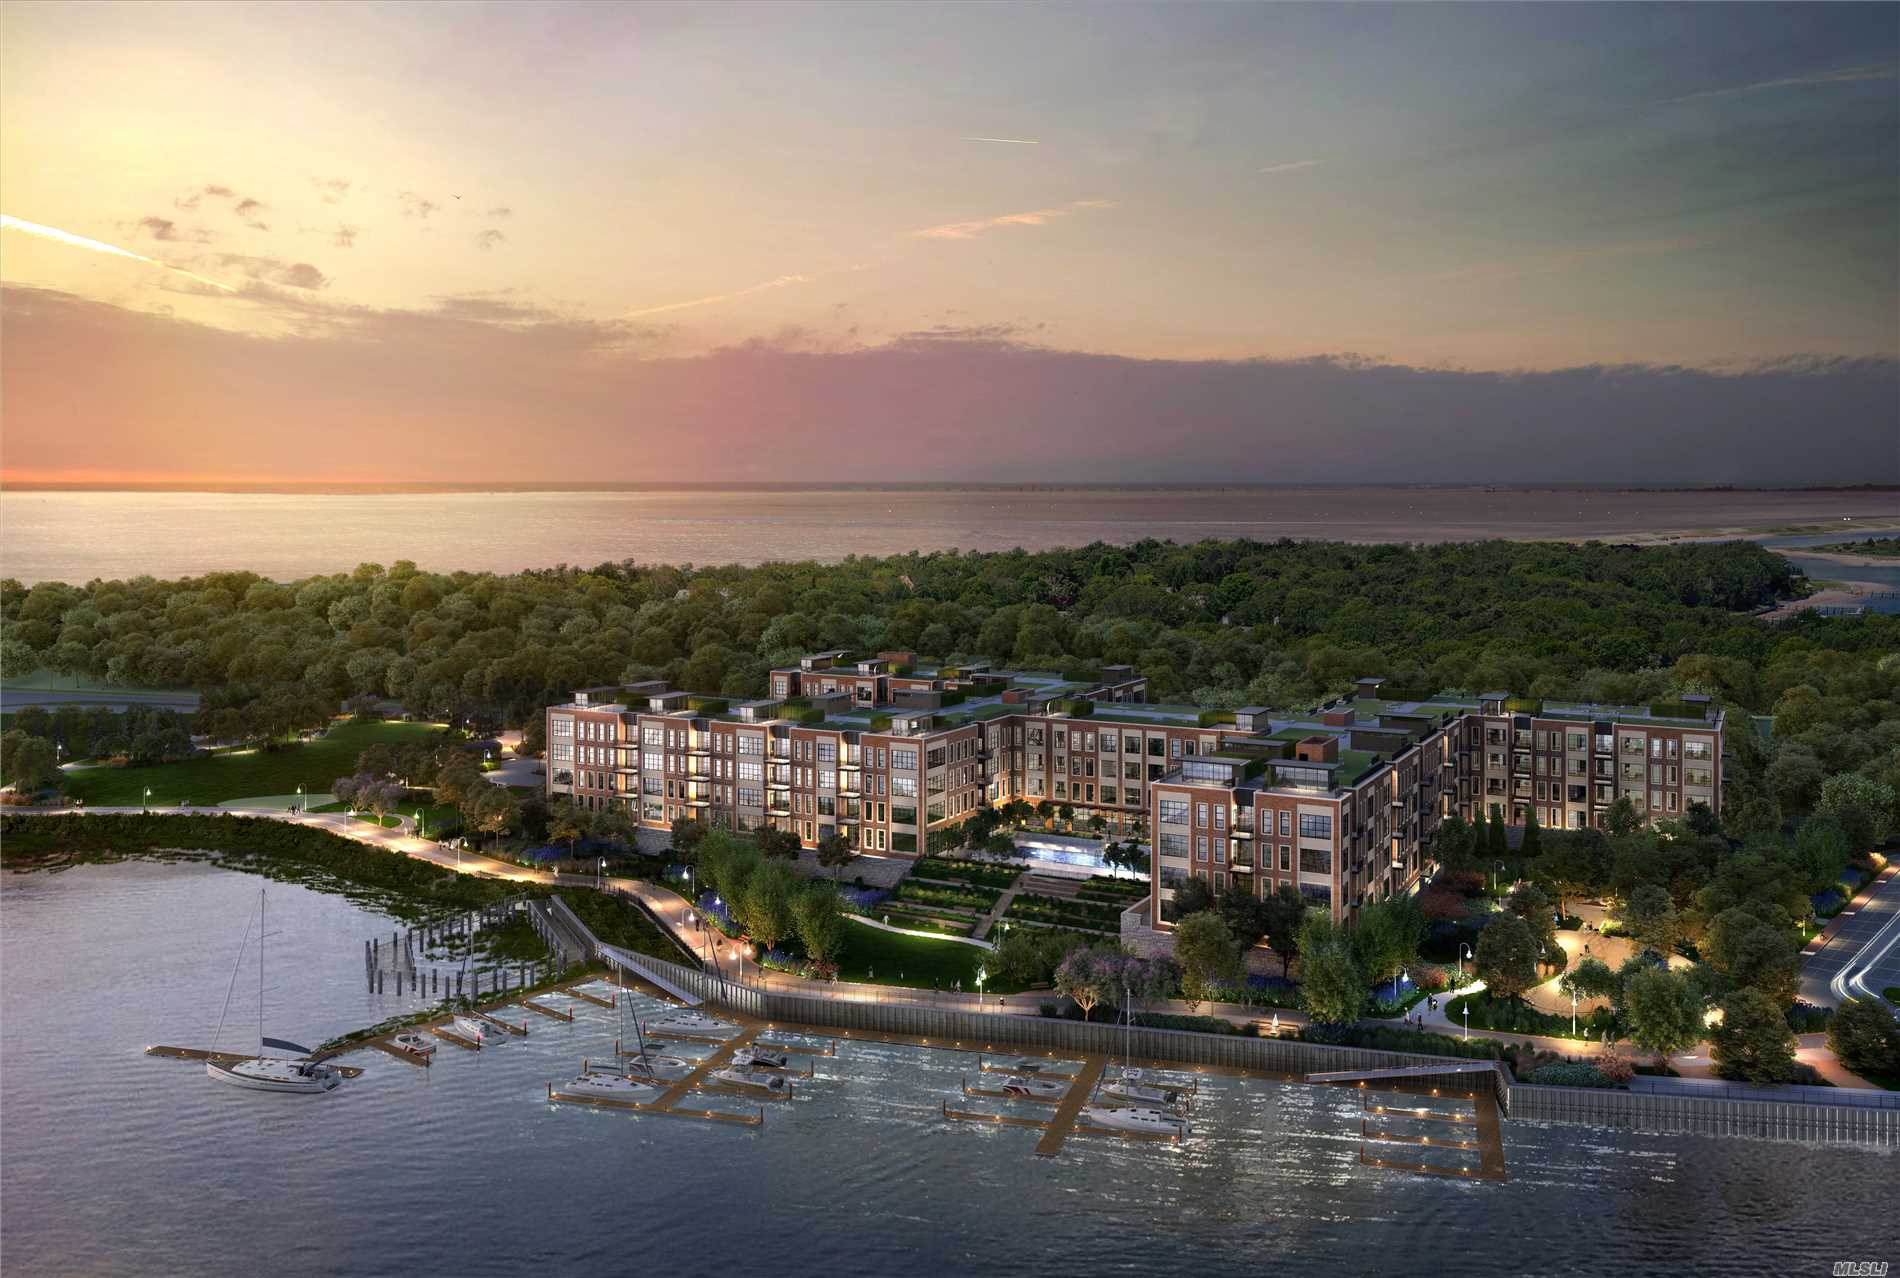 Property for sale at 100 Garvies Point Road # 1004, Glen Cove NY 11542, Glen Cove,  New York 11542